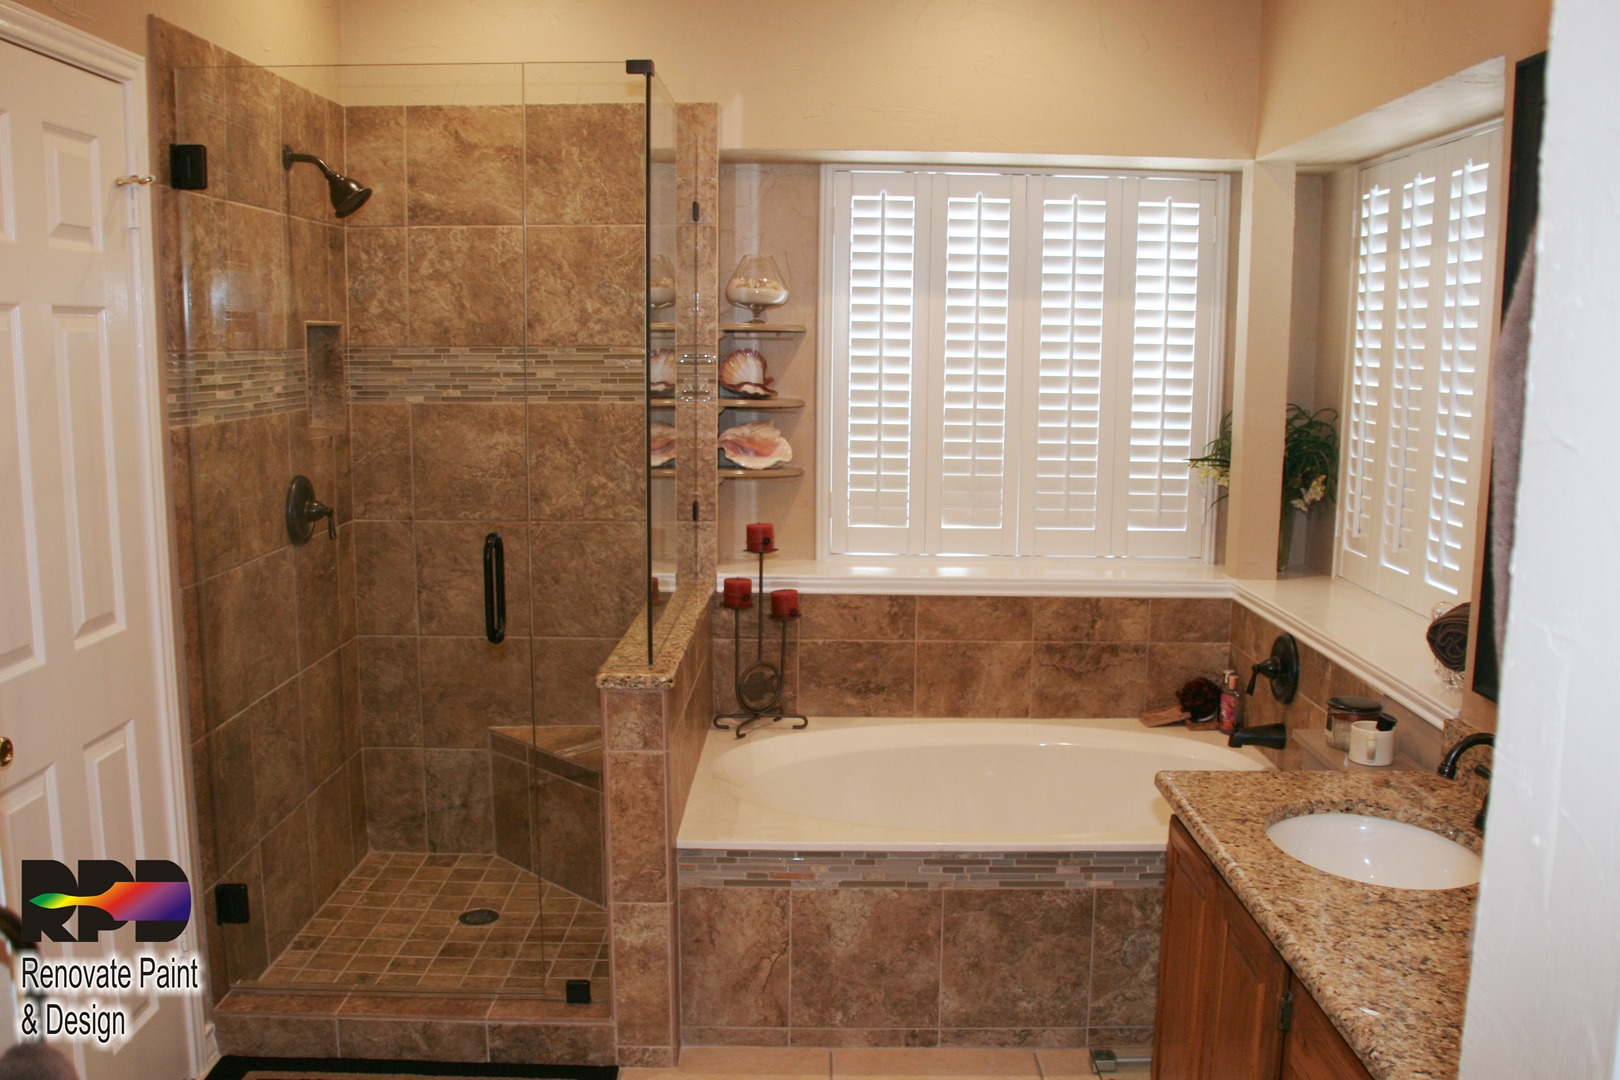 . Residential  Home Bathroom Remodeling in San Antonio  Texas